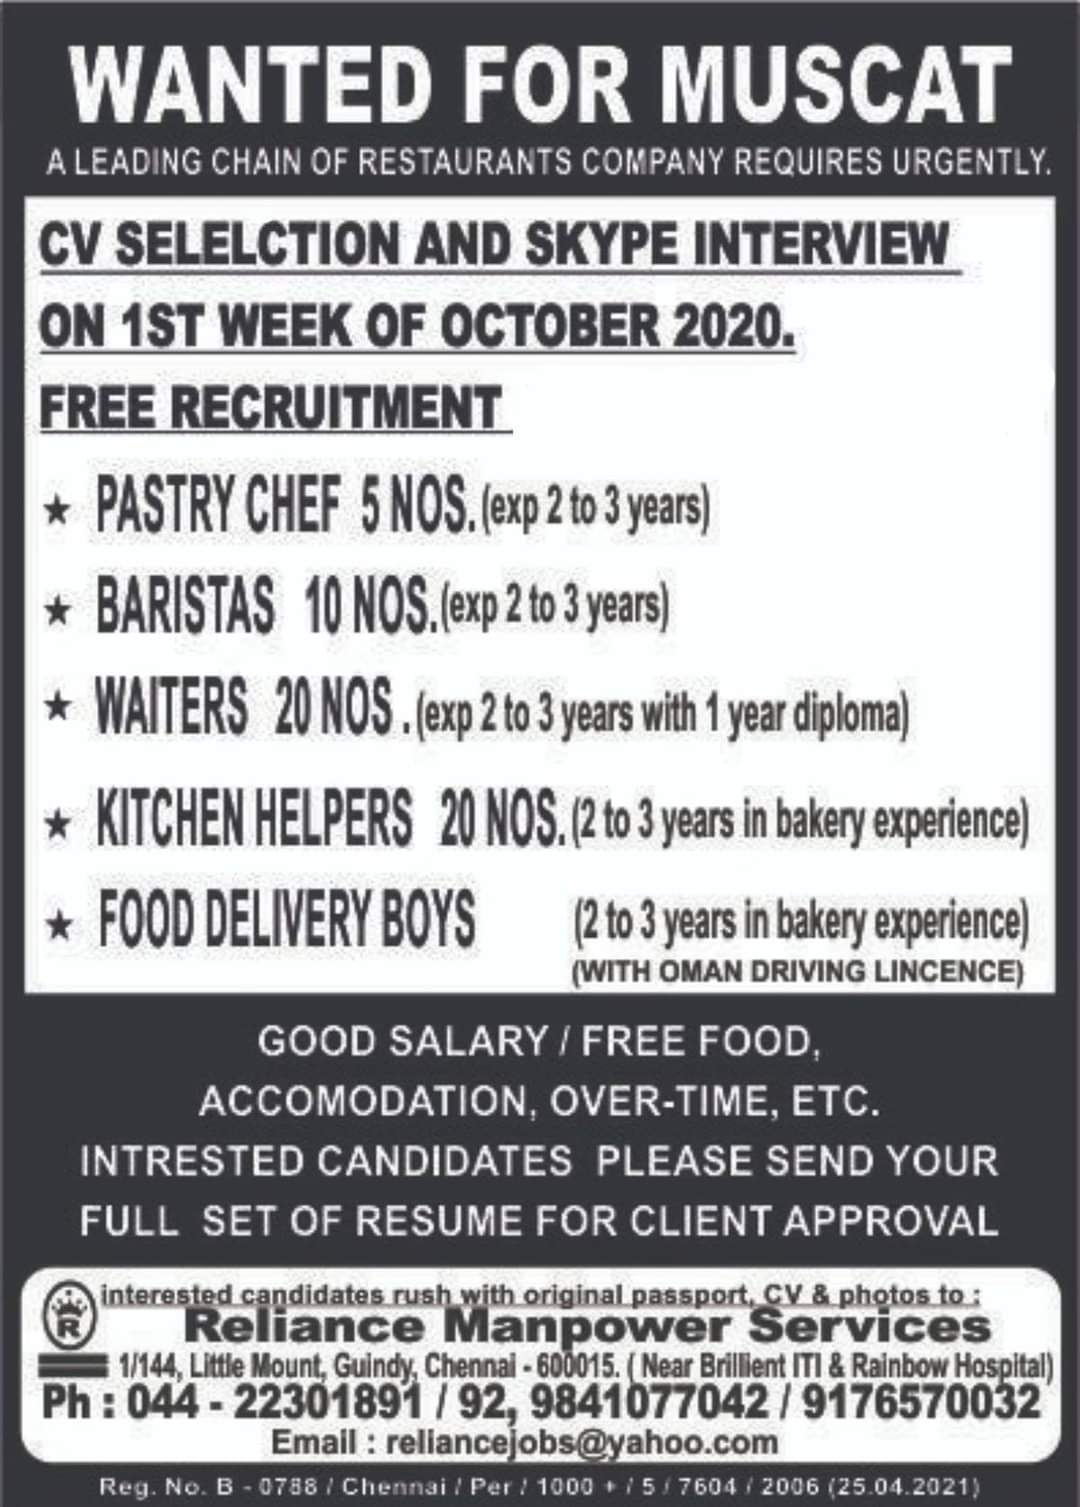 URGENTLY REQUIRED FOR A LEADING CHAIN OF RESTAURANTS COMPANY